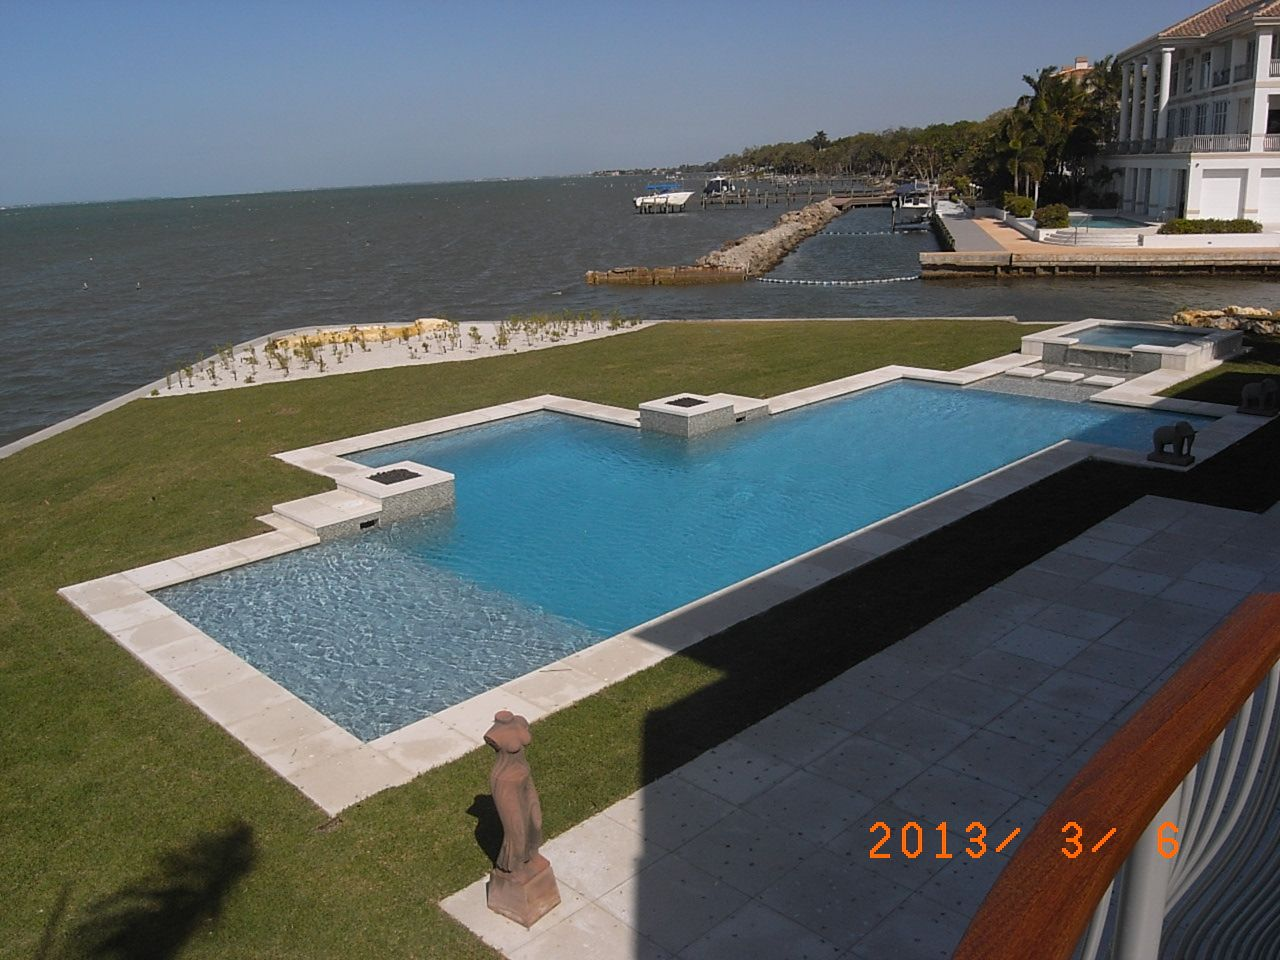 Pool With A View   By Pool Design Concepts Of Sarasota, Florida, A Client